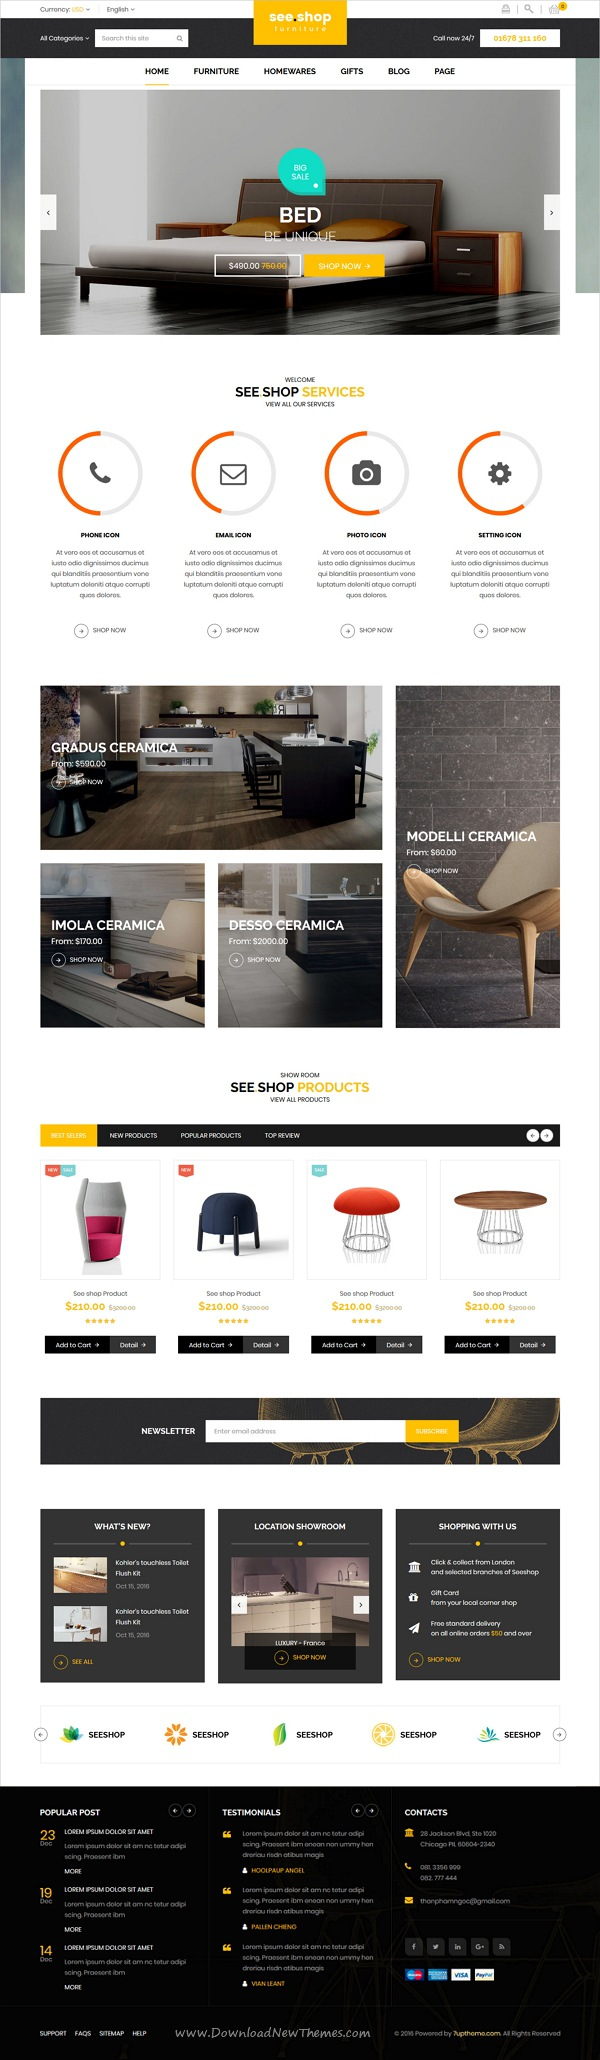 see.shop - Furniture RTL Responsive HTML Template   Template